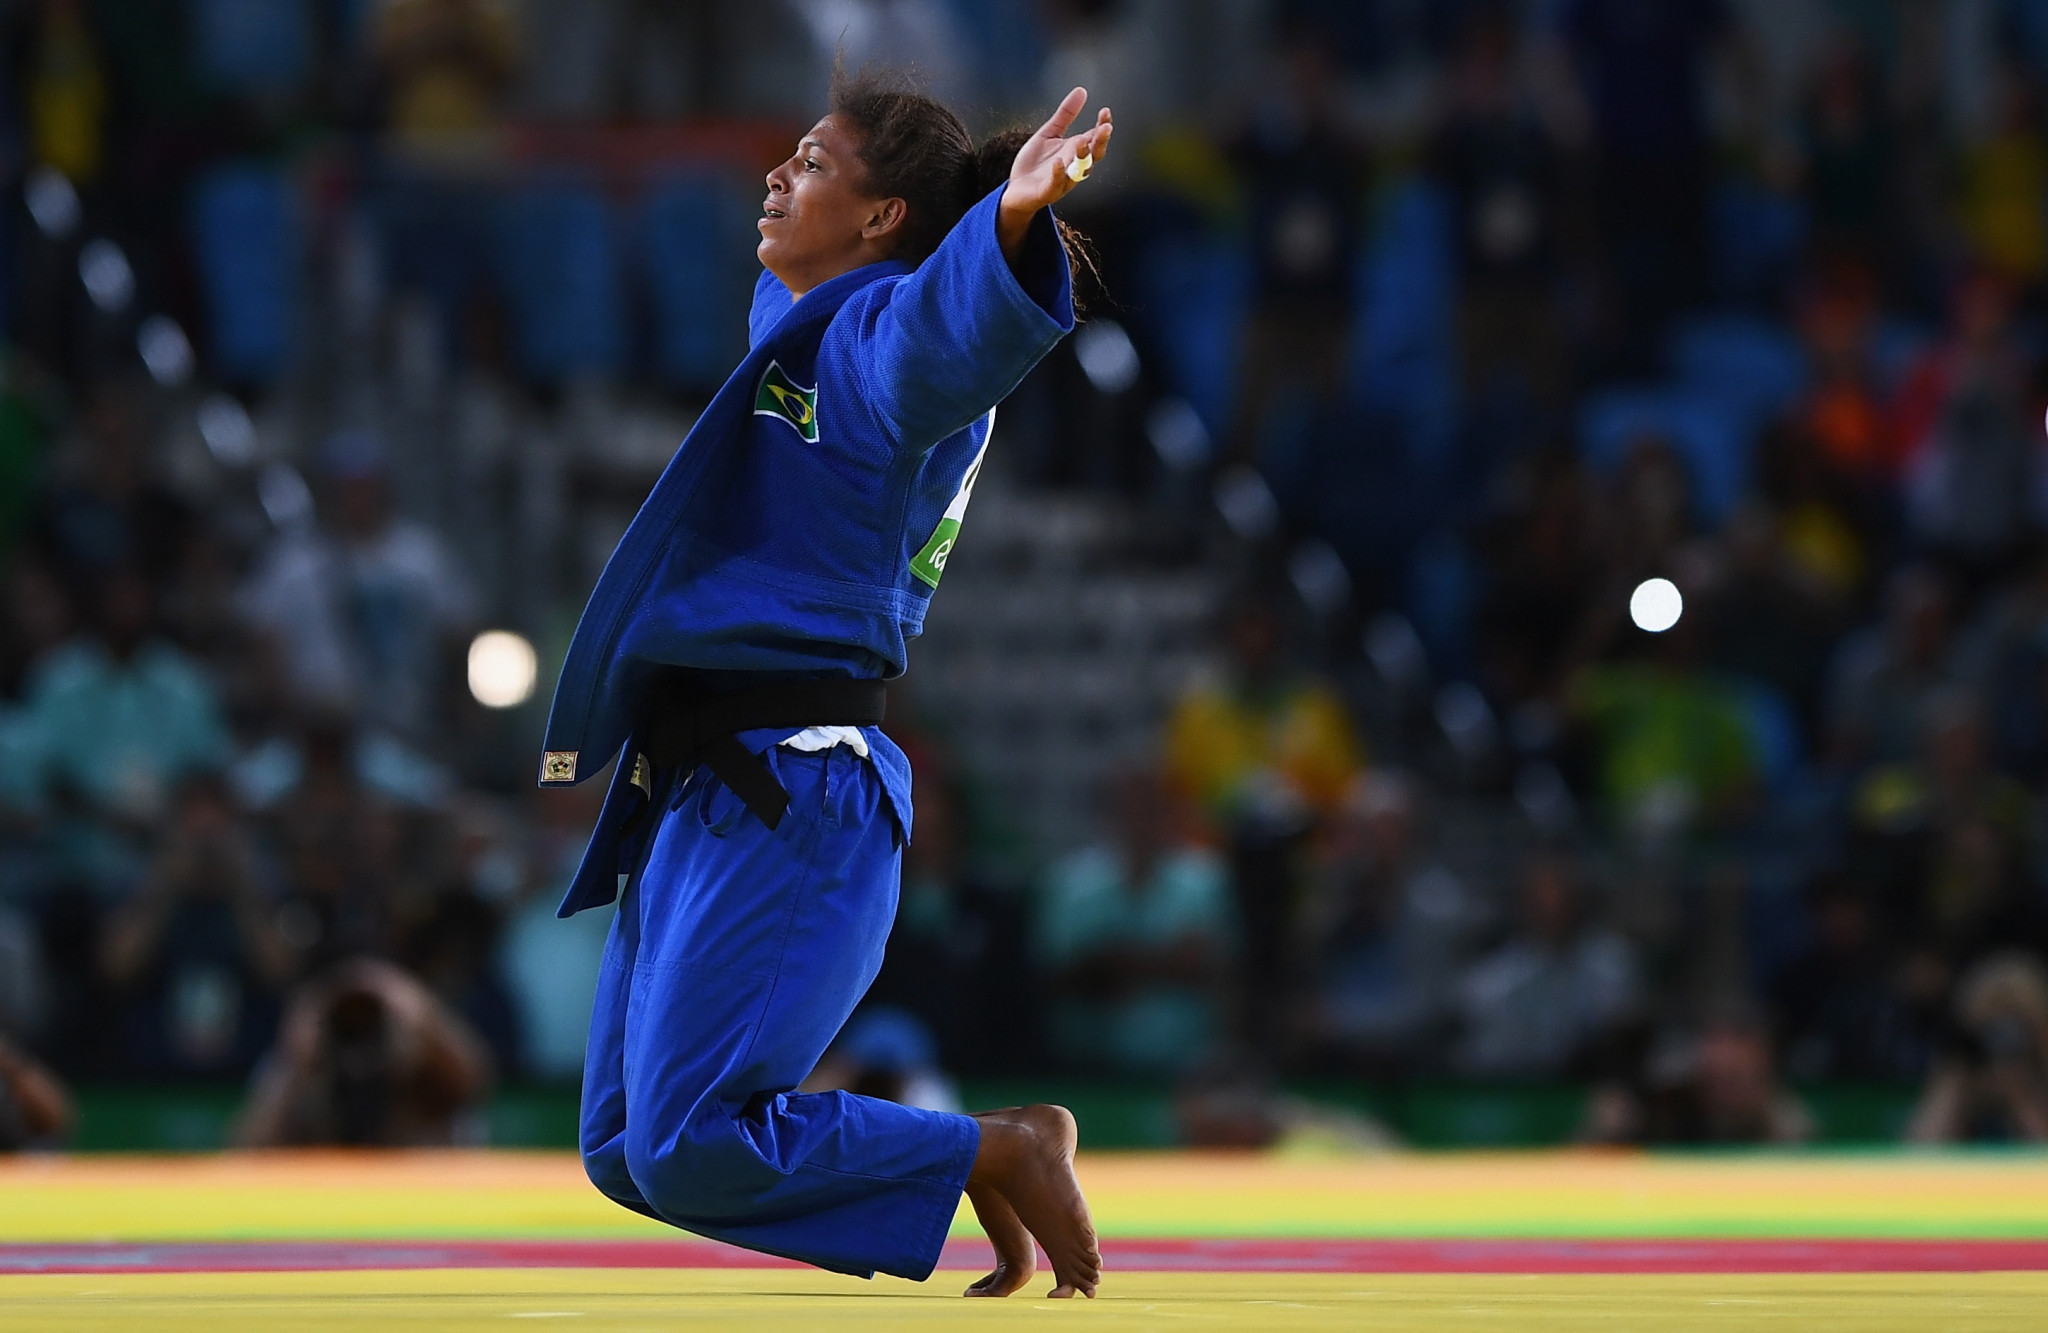 Rafaela Silva Lopes won Olympic gold in her home city at Rio 2016 ©Getty Images